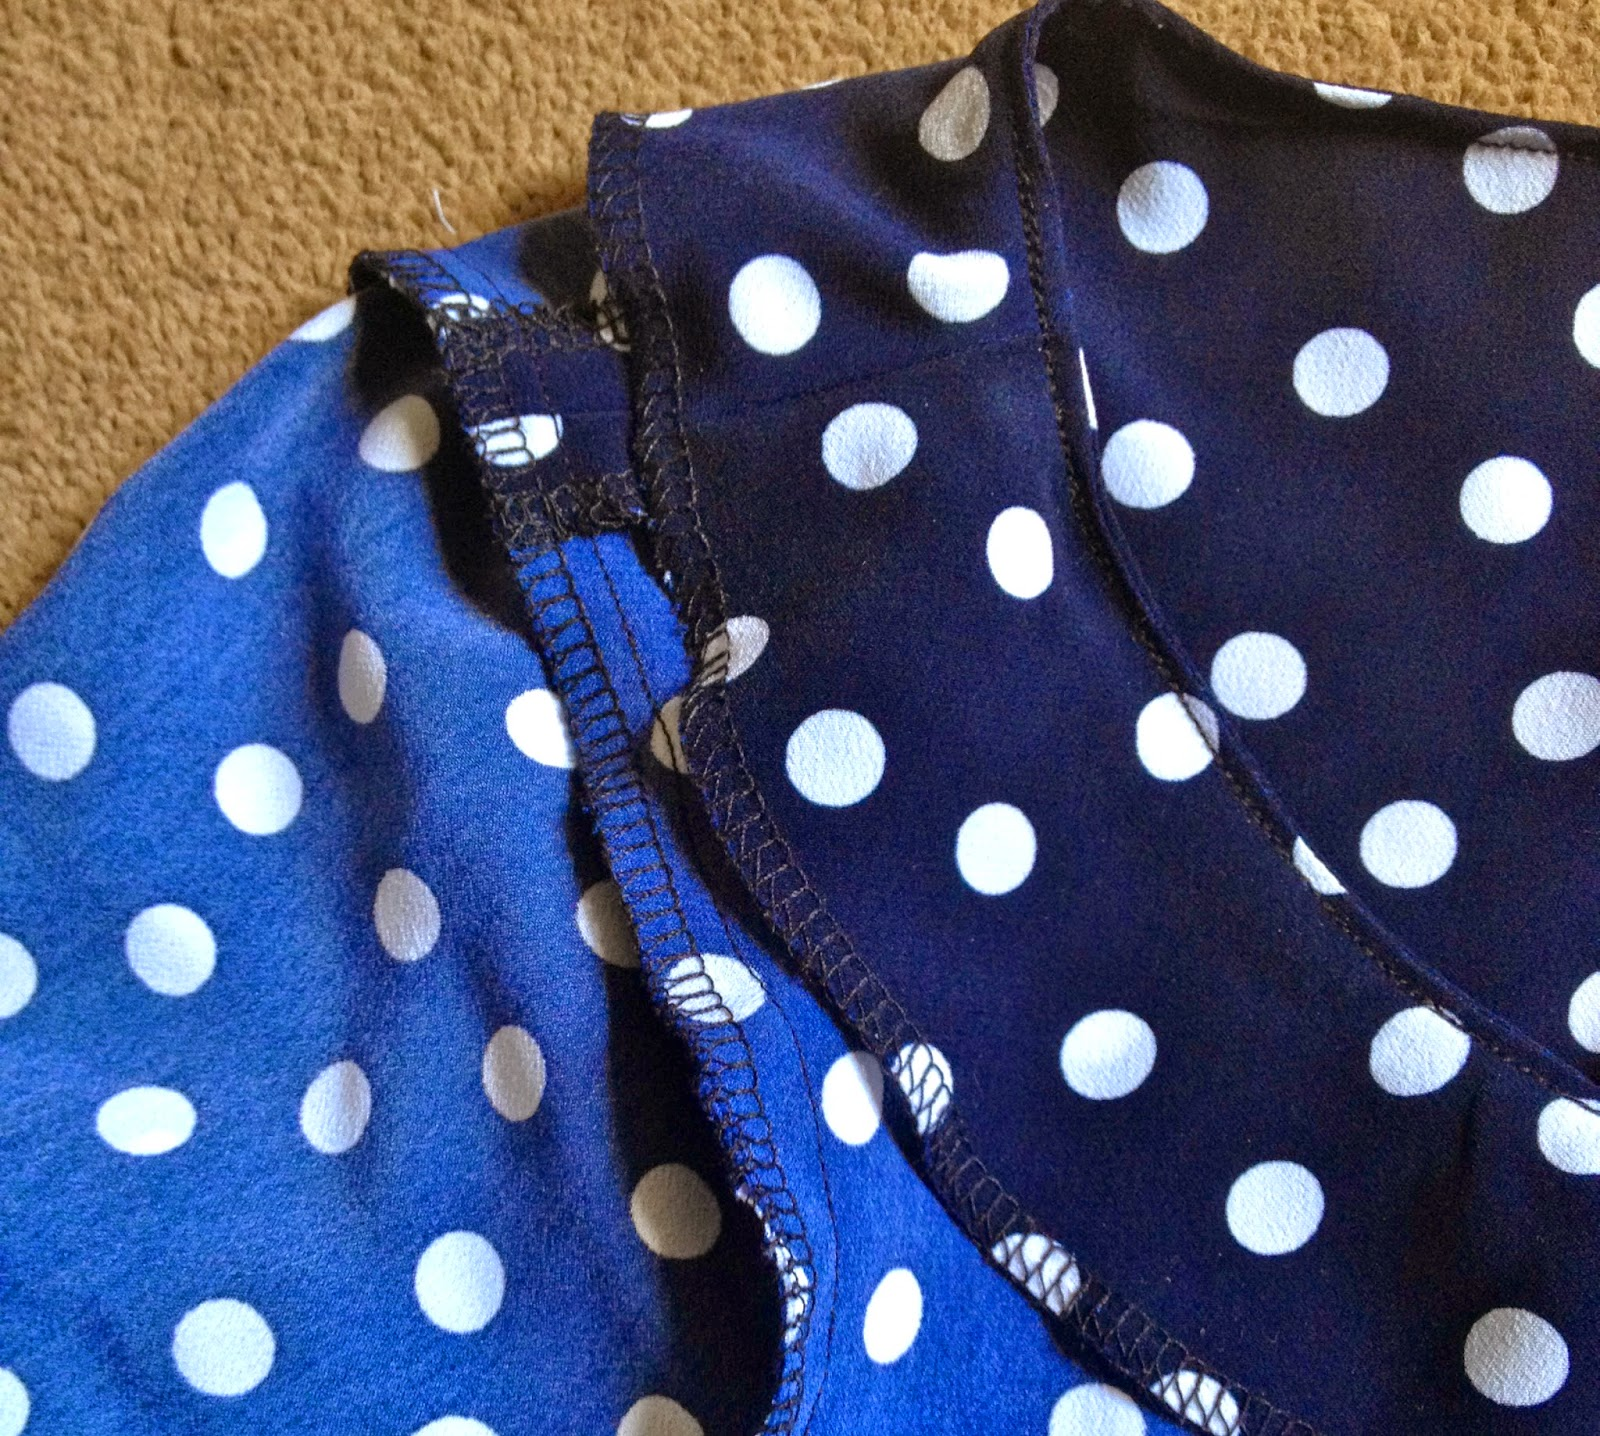 Diary of a Chainstitcher: Polka Dot Laurel Blouse from Colette Patterns